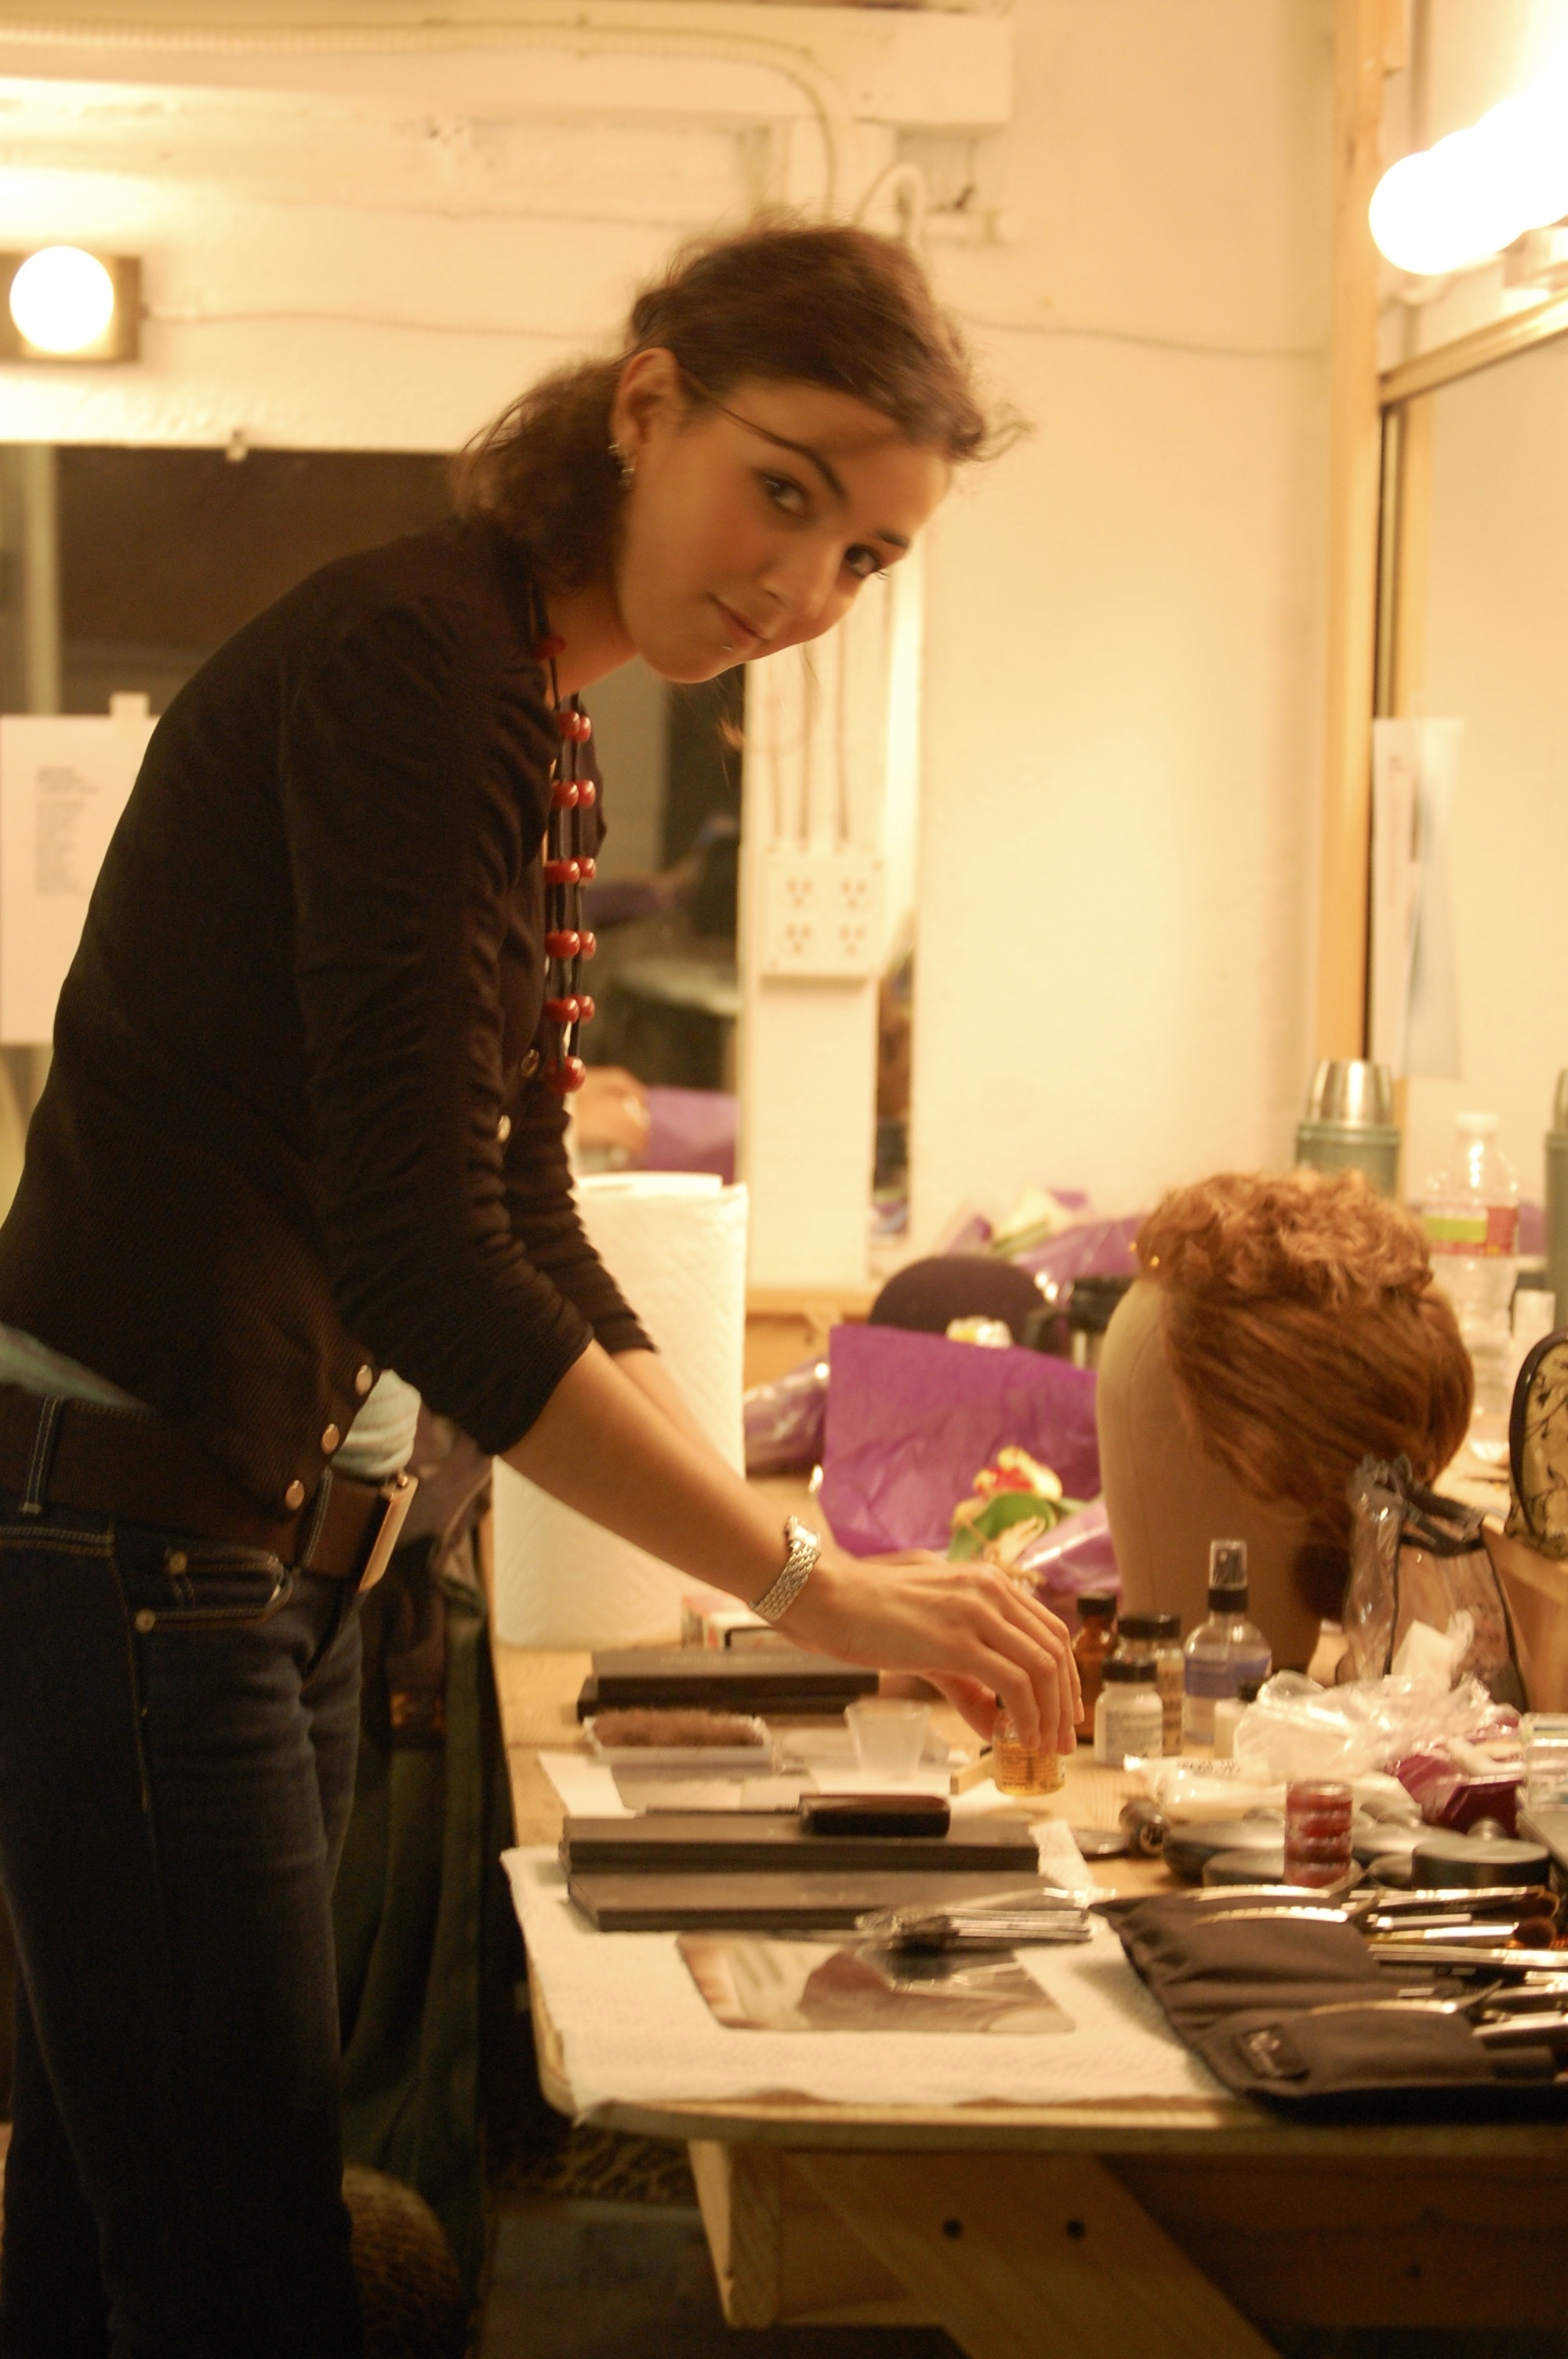 Make-up artist Boutheyna Boots getting things ready at her station backstage at Hollywood's El Centro Theatre during Lascaux Entertainment's 2011 production of  The Elephant Man , directed by John Drouillard.  Photo by Nirvana Kowlessar.